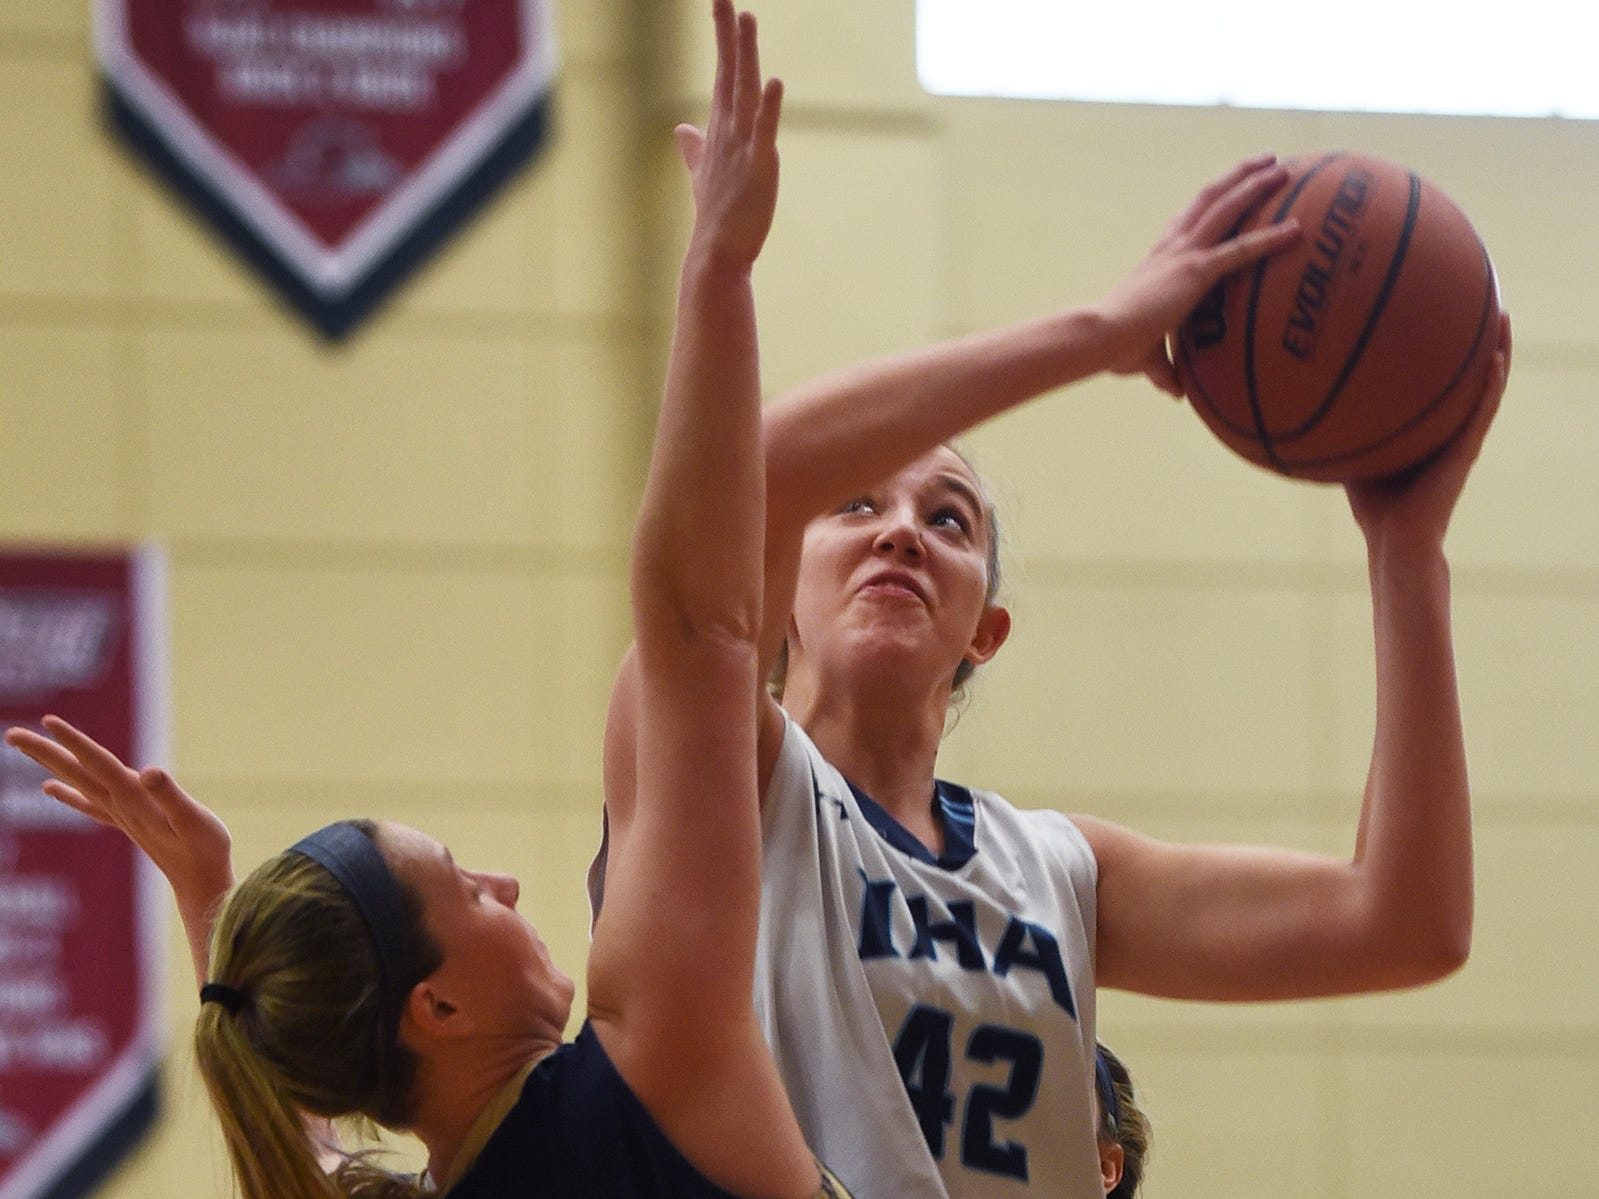 Anna Morris (no. 42) of Immaculate Heart tries to shoot over Megan Weis (no. 11)  of NV/Old Tappan in the first half during the 2019 Bergen County girls basketball championship semifinal at Ramapo College in Mahwah on 02/10/19.